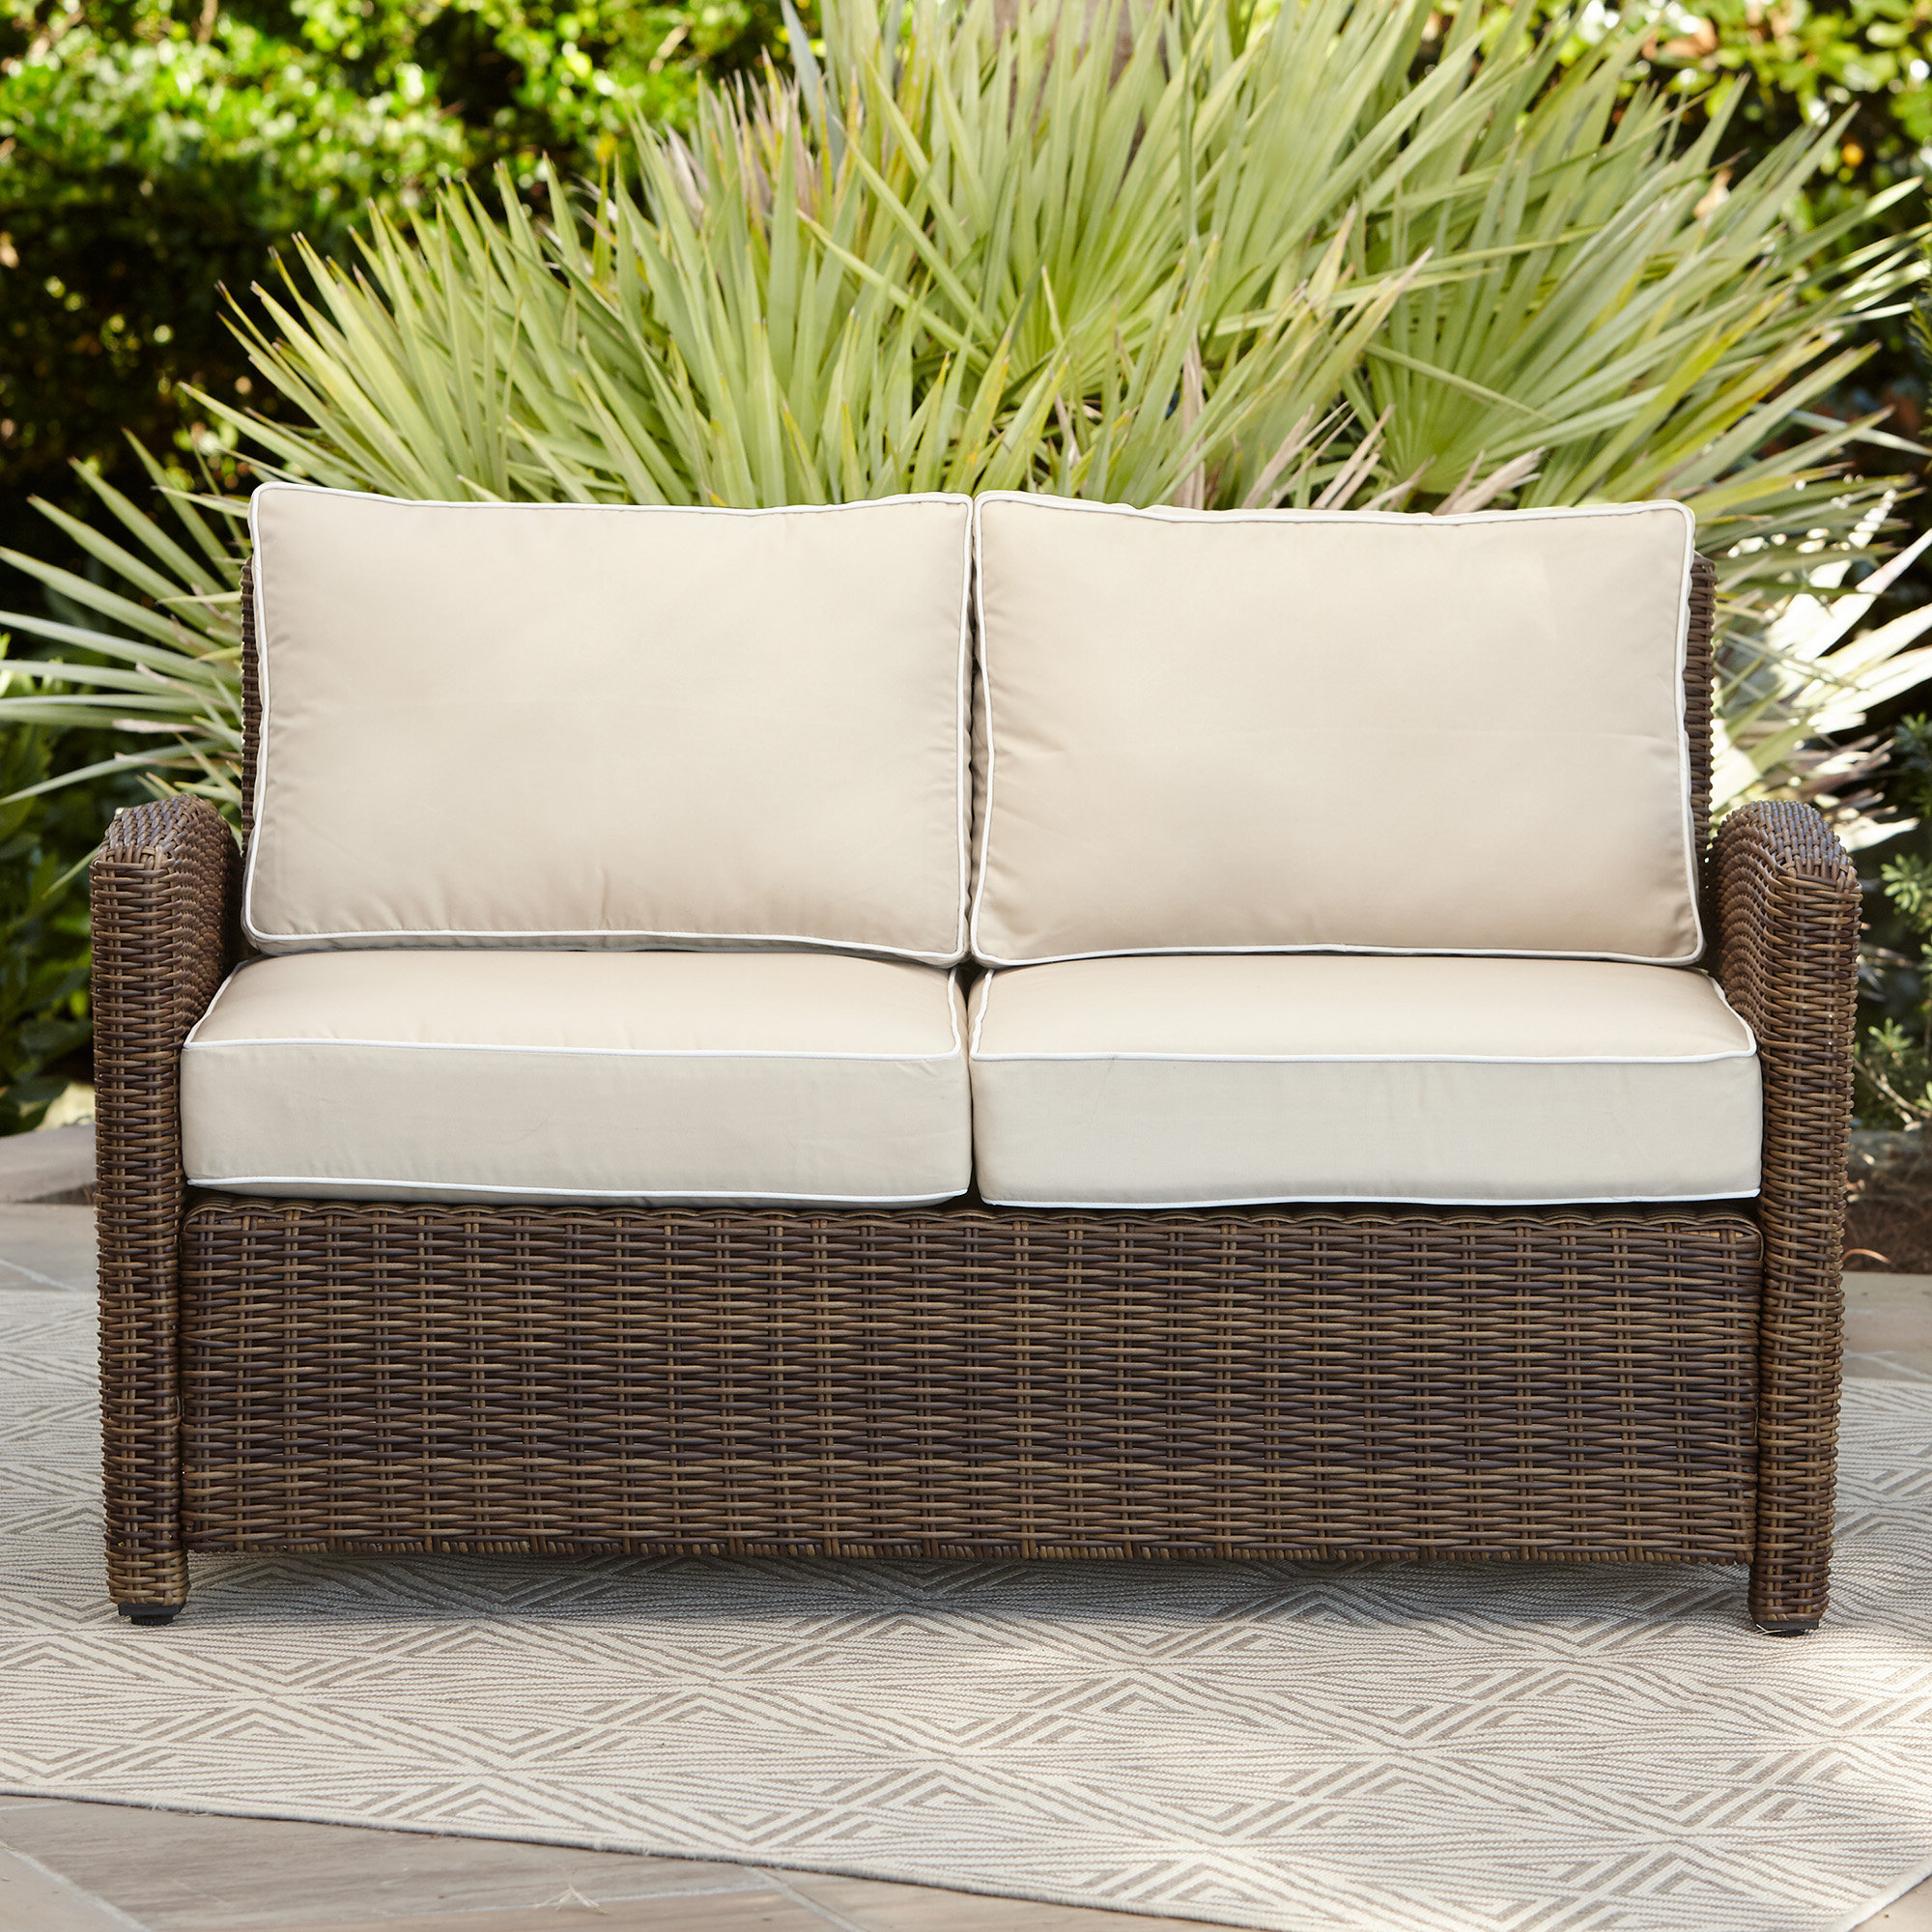 Newest Jamilla Teak Patio Sofas With Cushion With Birch Lane™ Heritage Lawson Wicker Loveseat With Cushions (View 19 of 25)